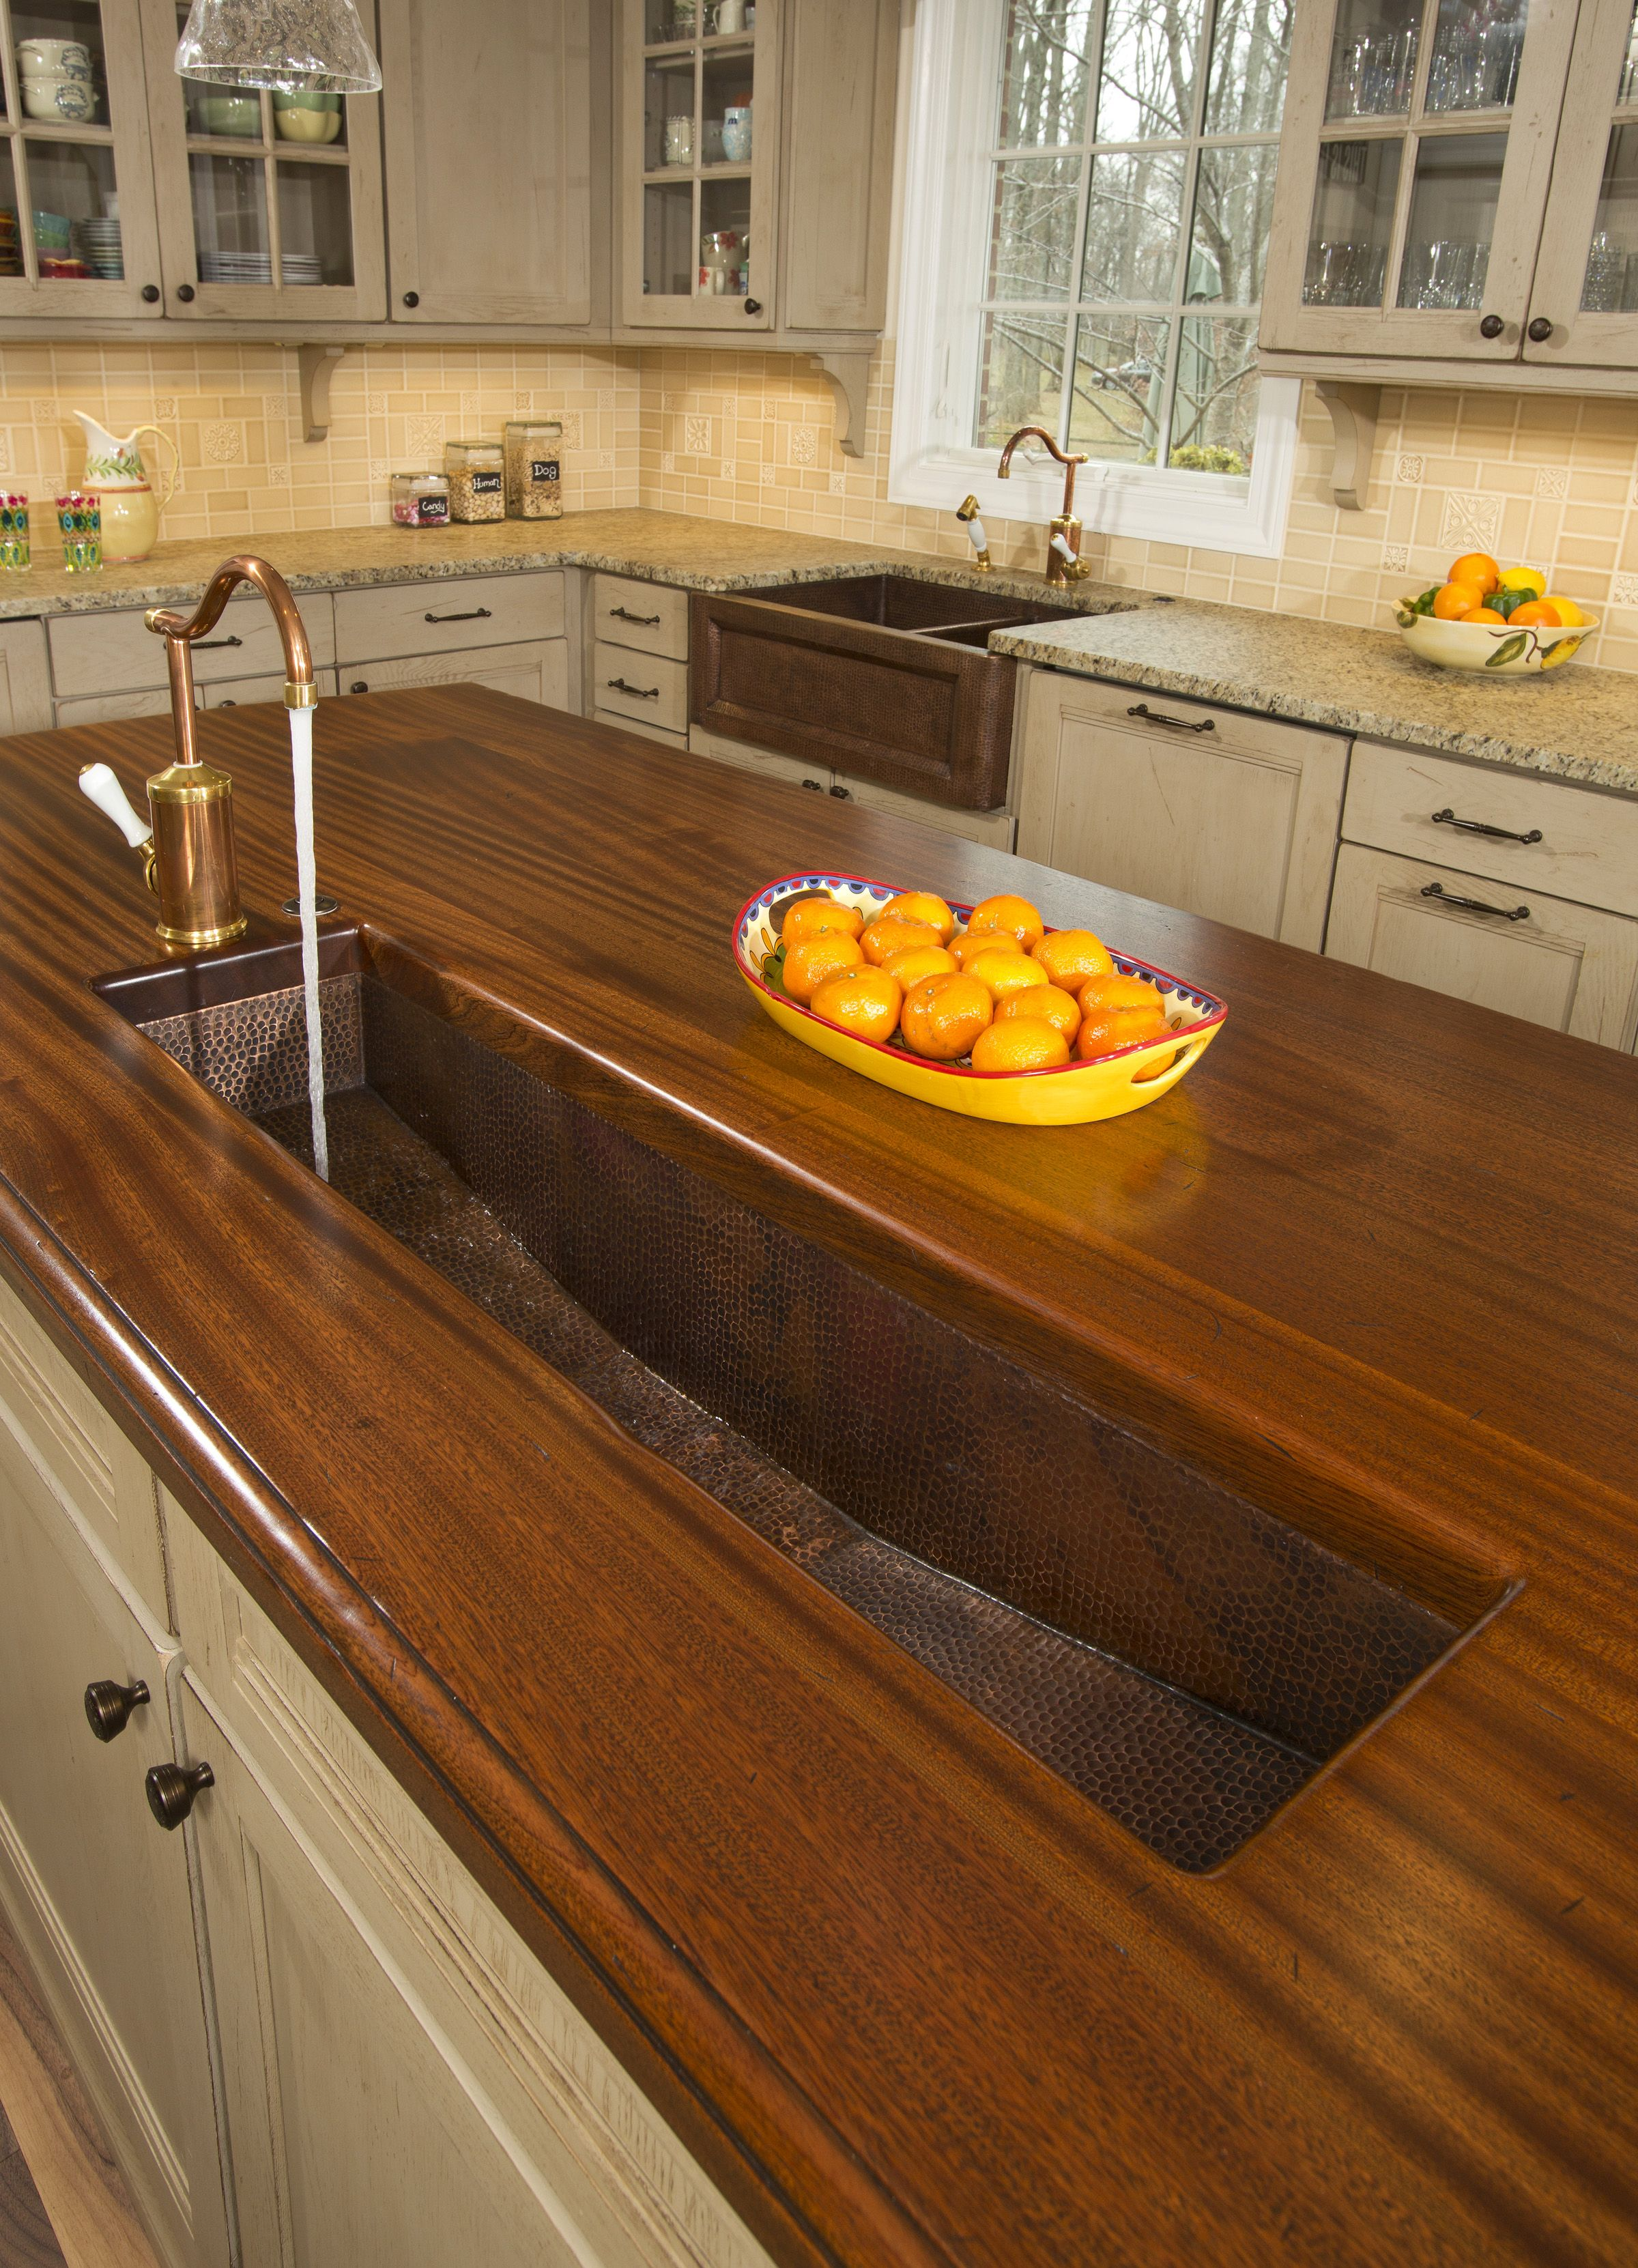 Trough Sink In Kitchen Island Perfect For Food Prep Mark